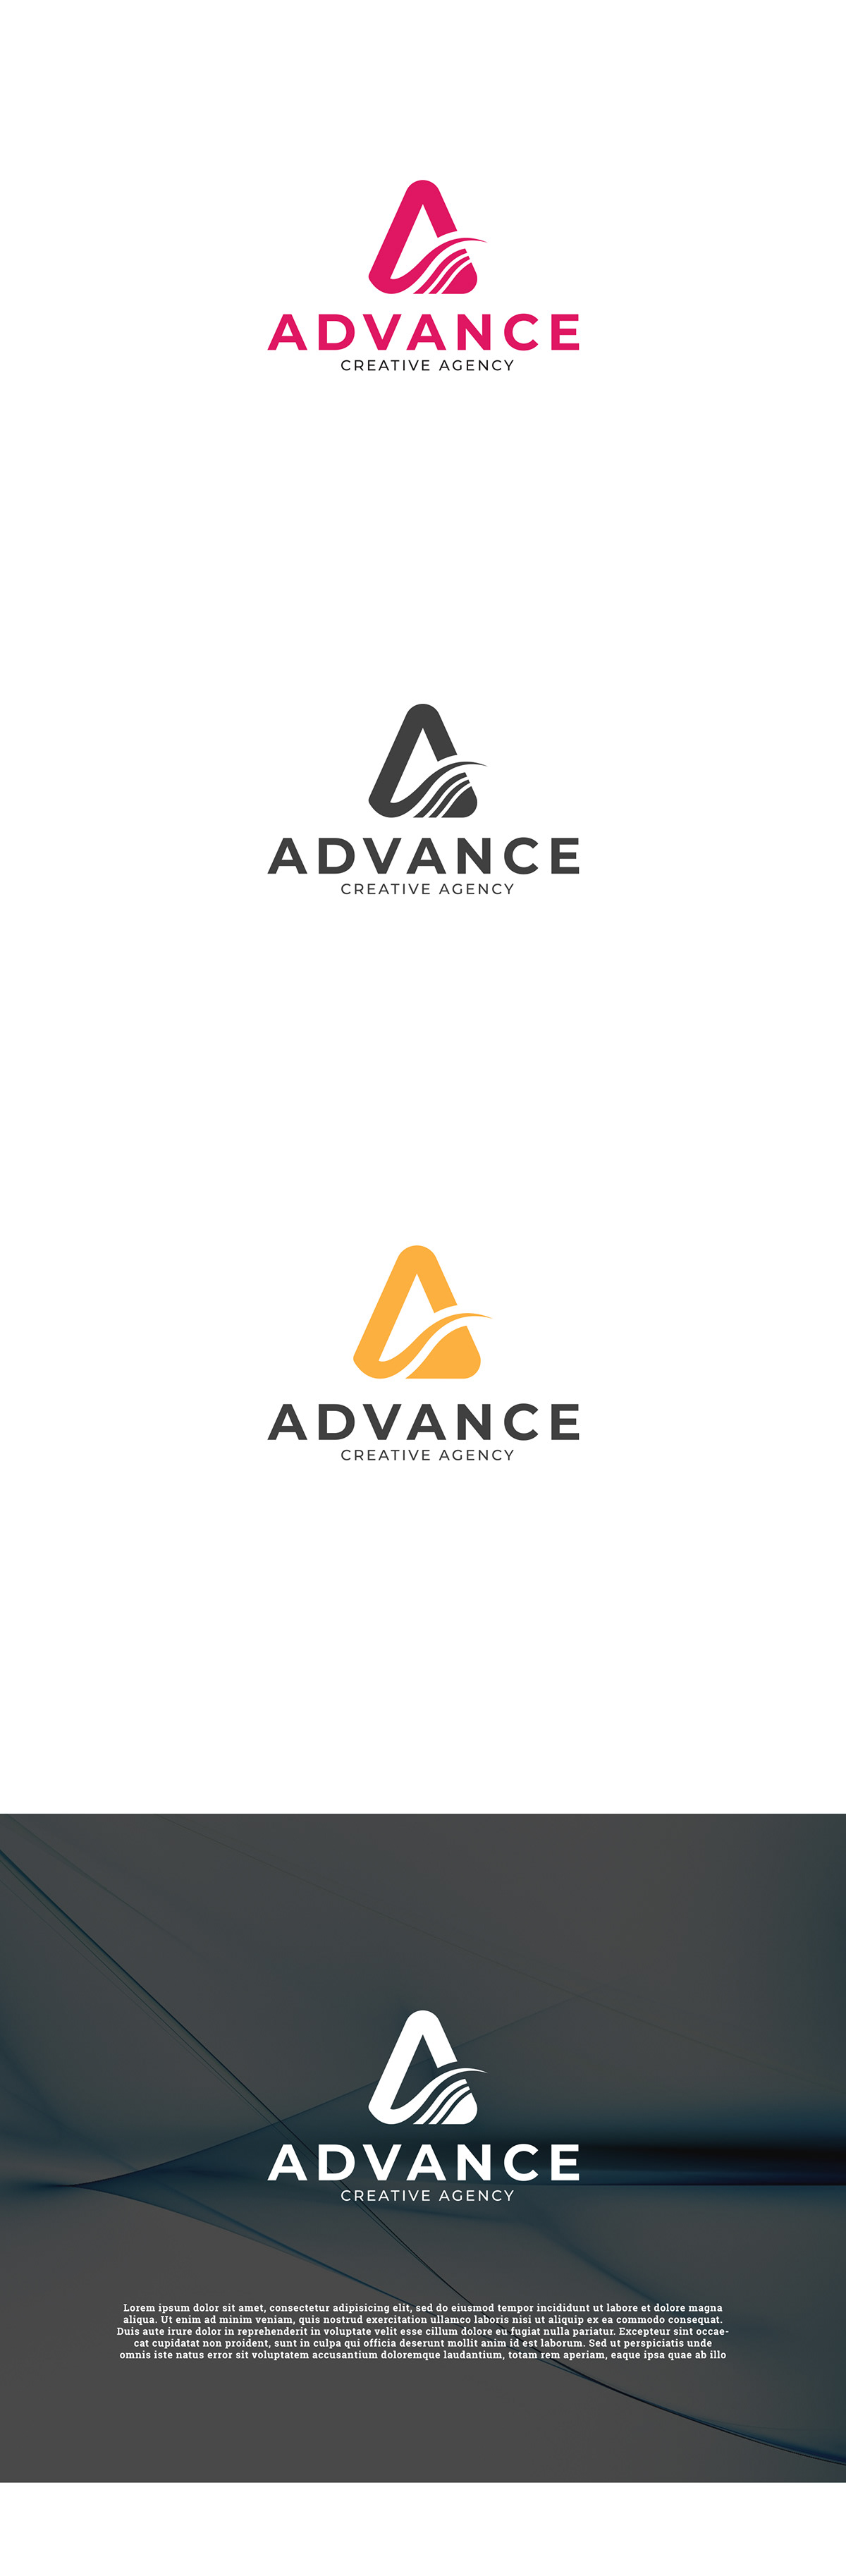 Advance creative agency logo on Student Show.